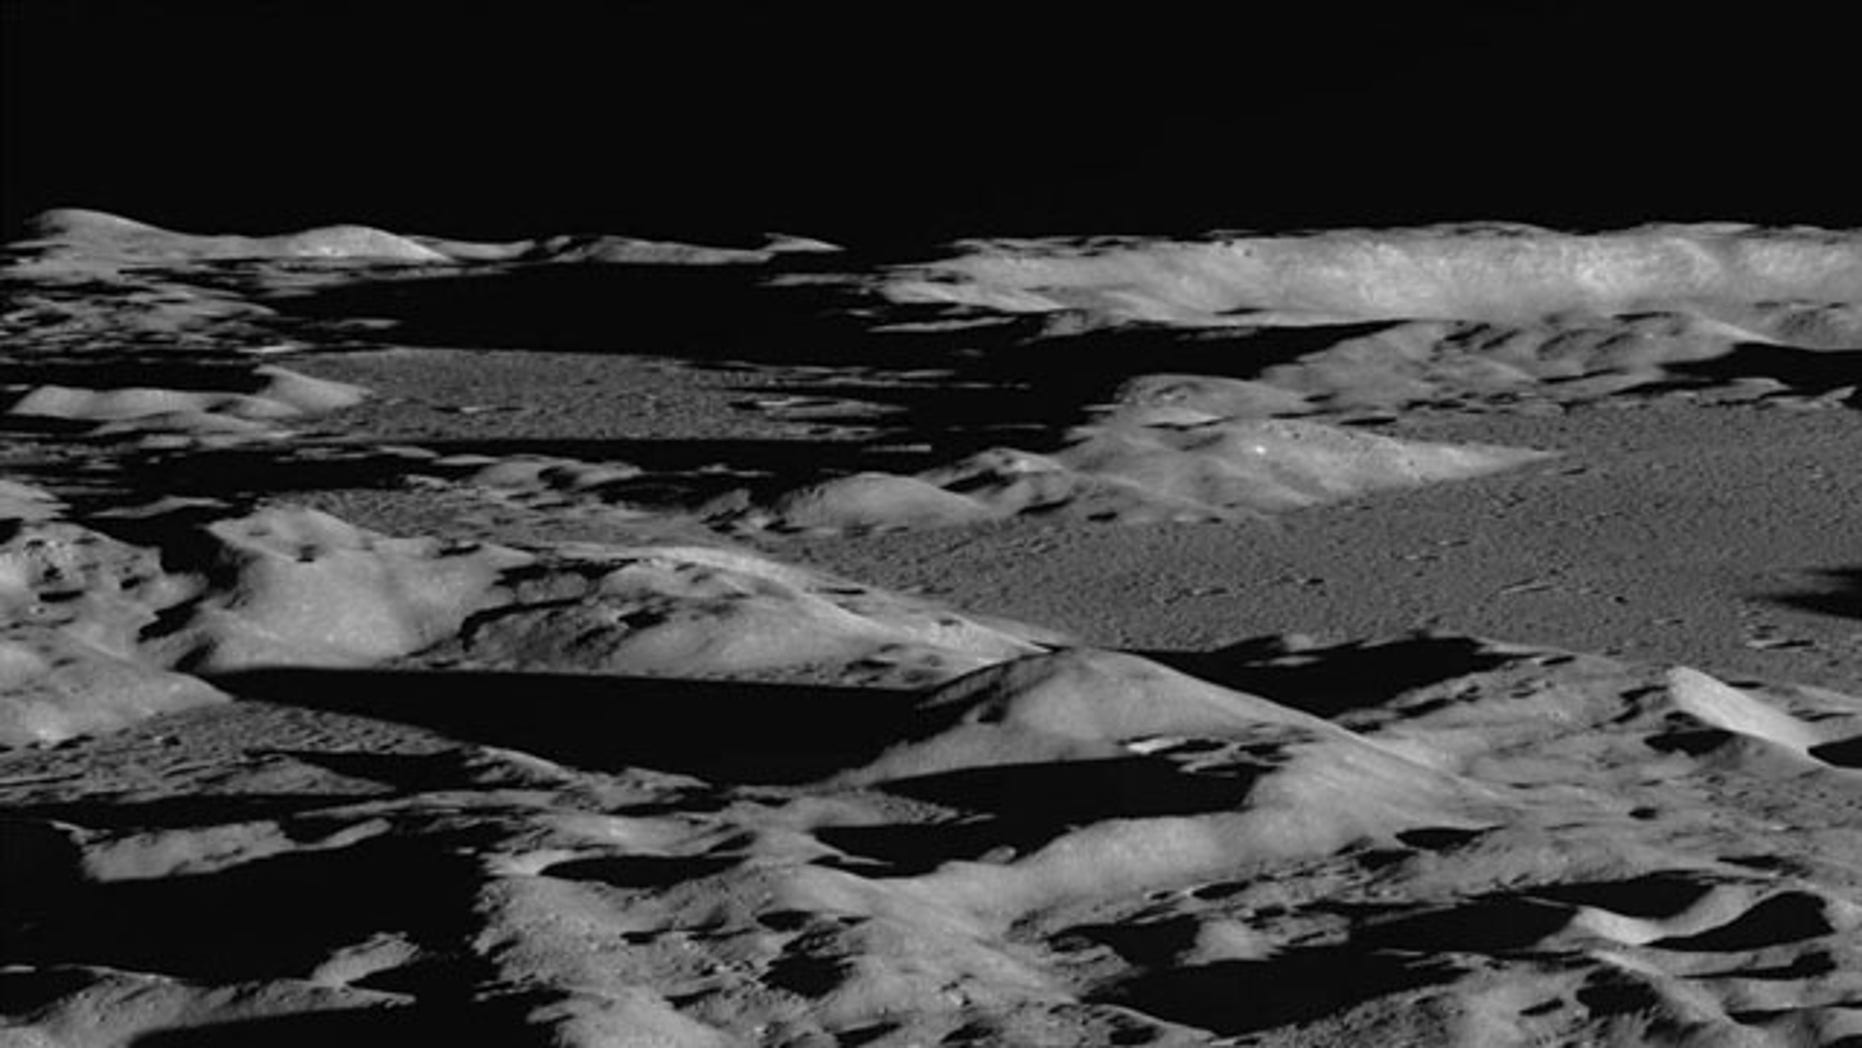 By looking across the landscape rather than straight down, photos from the Lunar Reconnaissance Orbiter emphasize topography and lighting, giving a dramatic view of the lunar terrain.